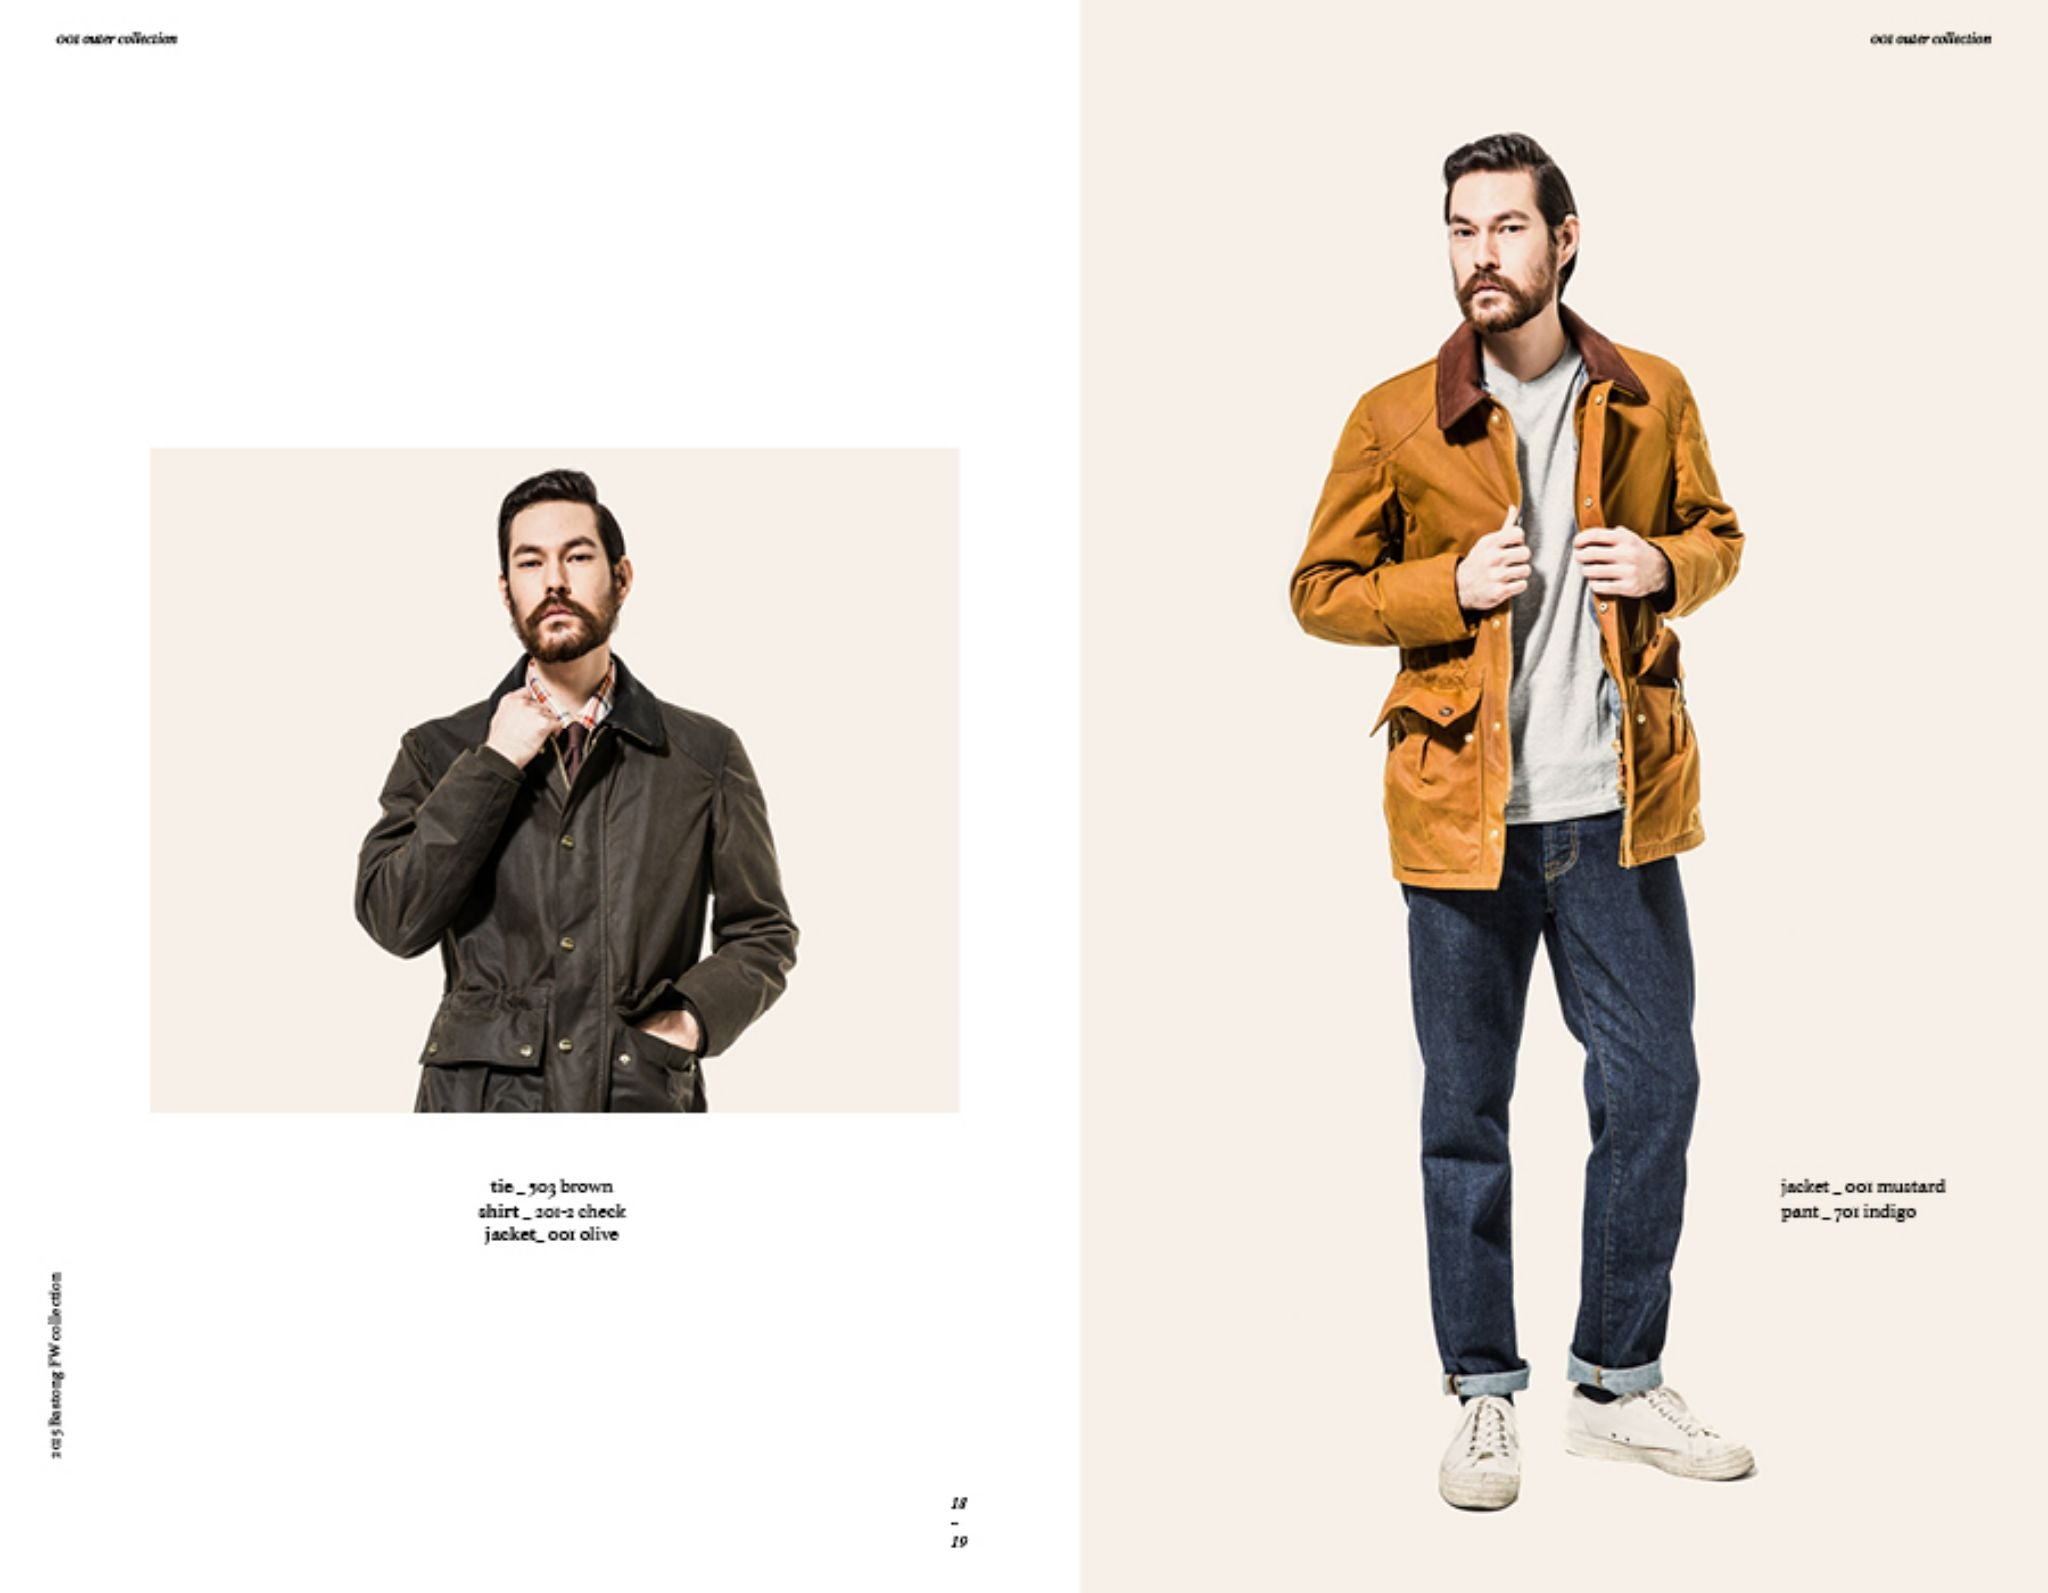 Bastong fw15 lookbook - casual style denim with waxed cotton jacket